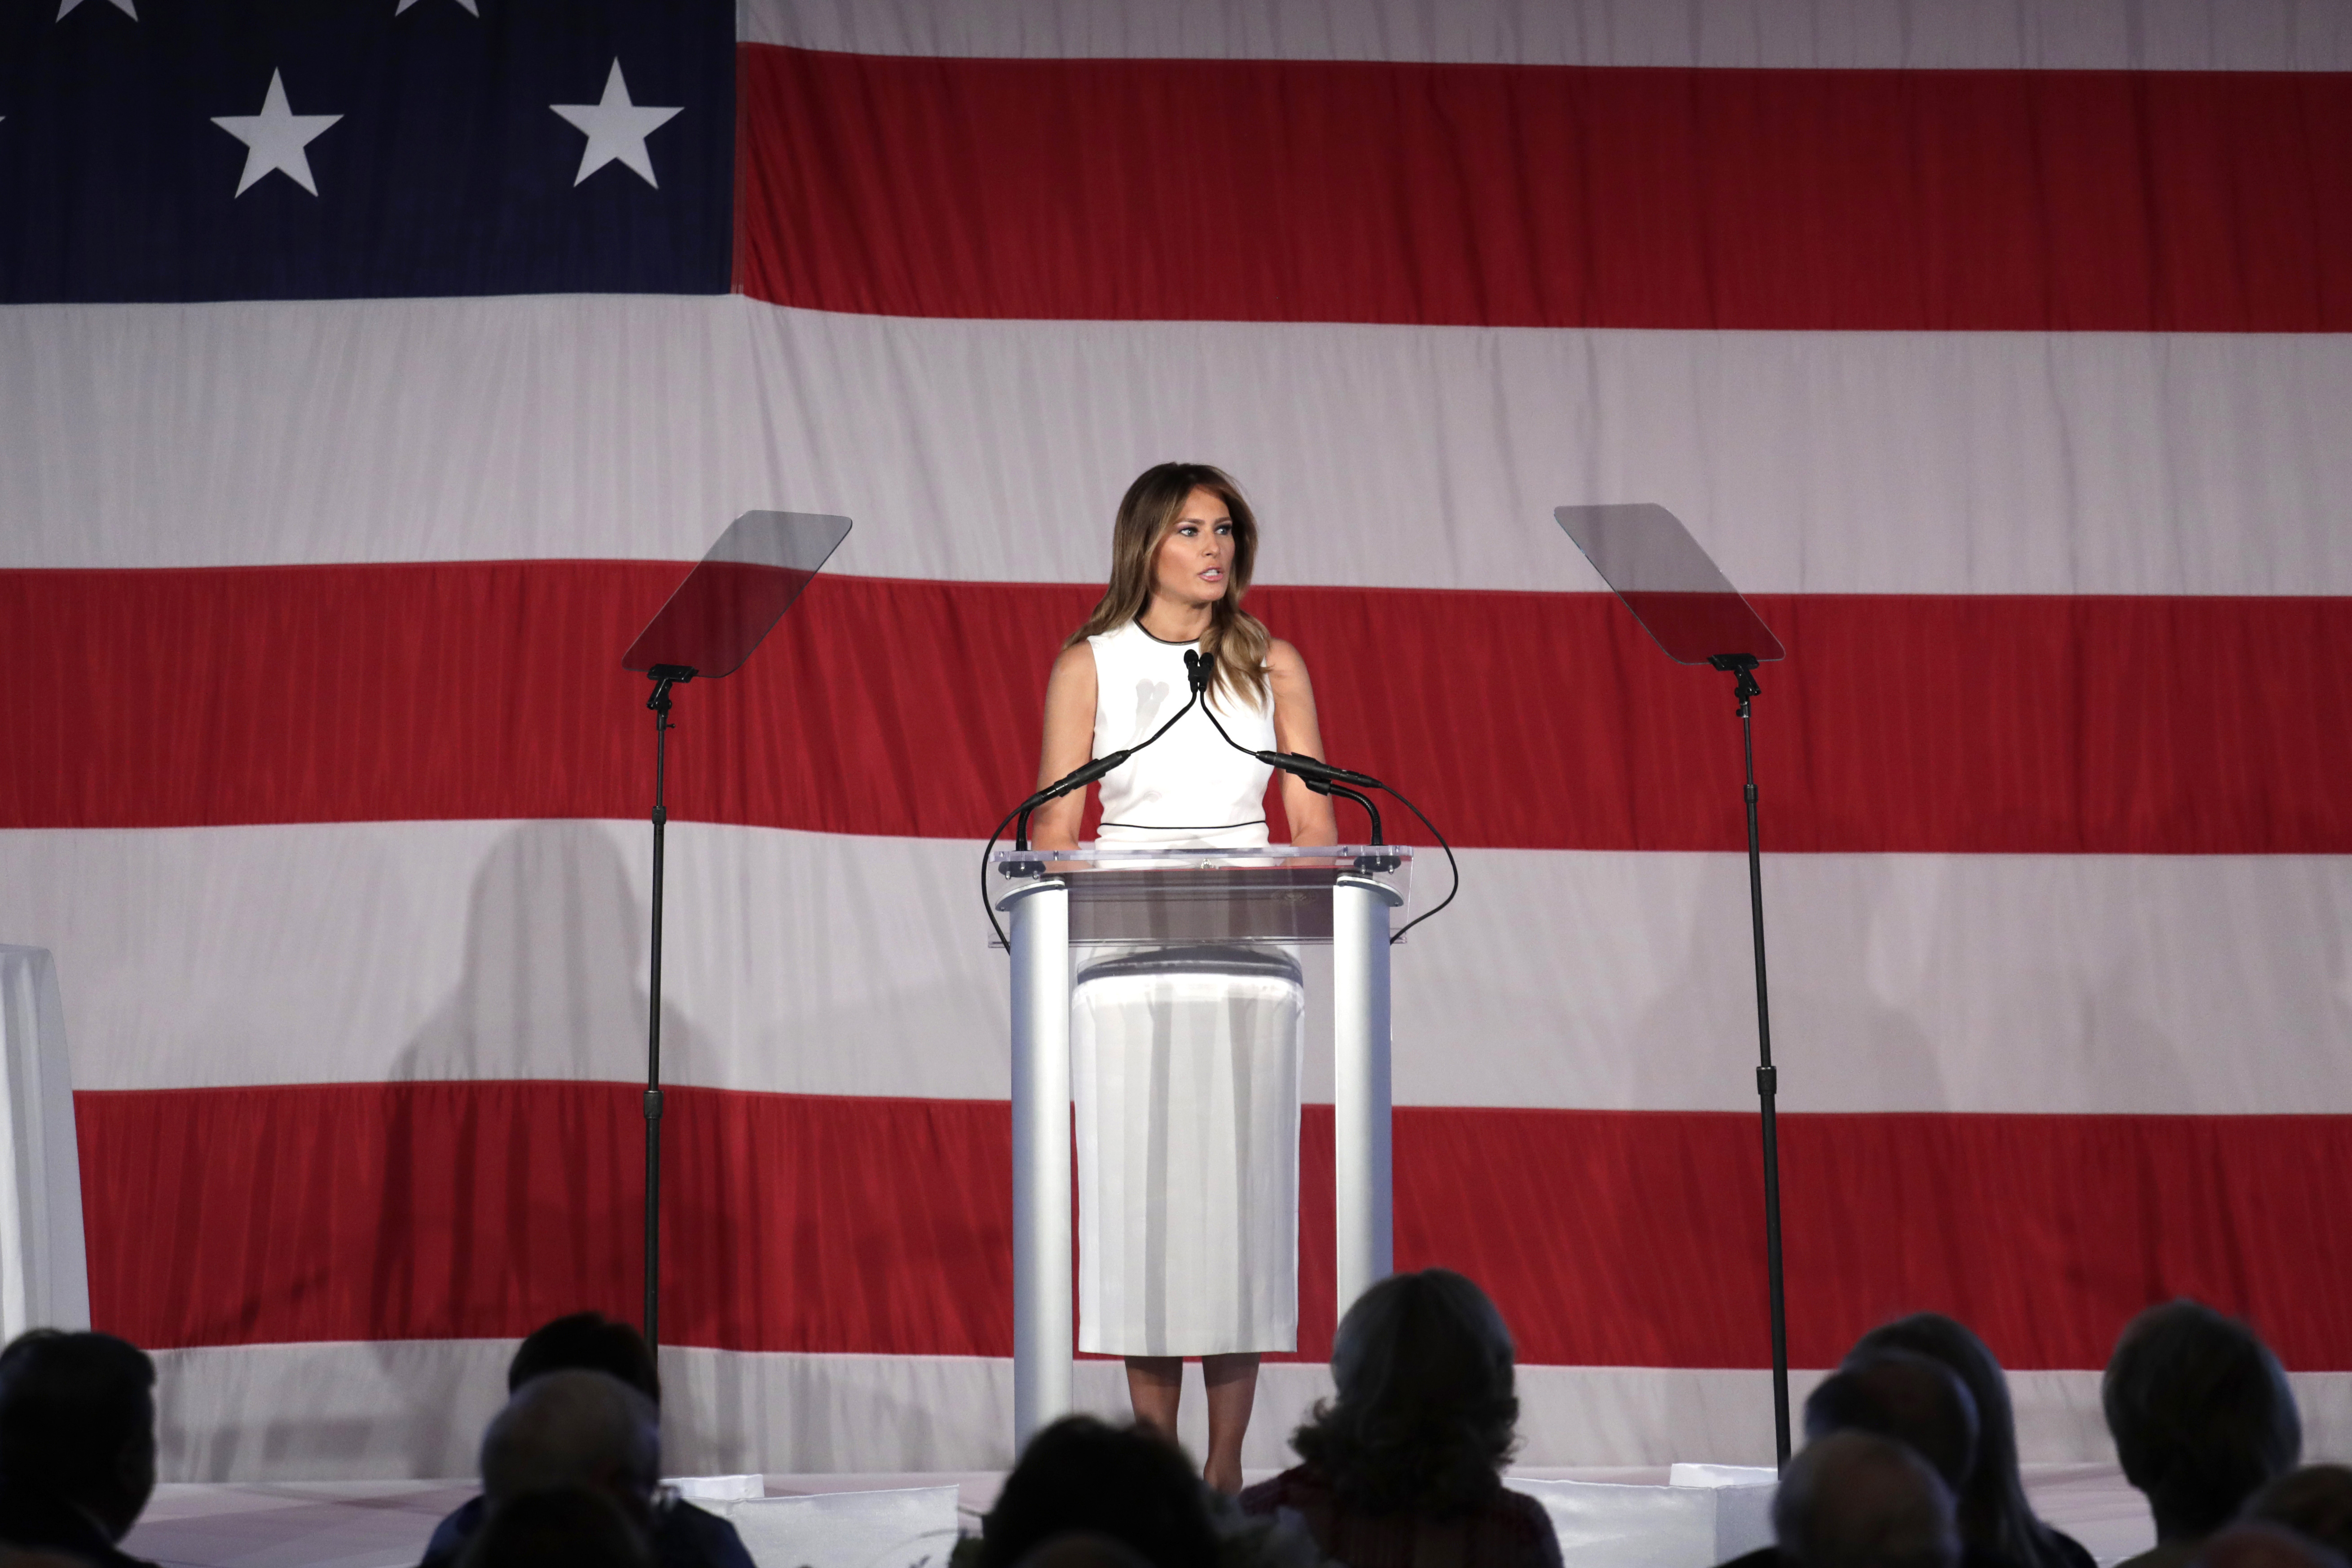 First lady Melania Trump speaks at the Women of Distinction Luncheon hosted by Palm Beach Atlantic University, on Feb. 19, 2020, in Palm Beach, Fla.